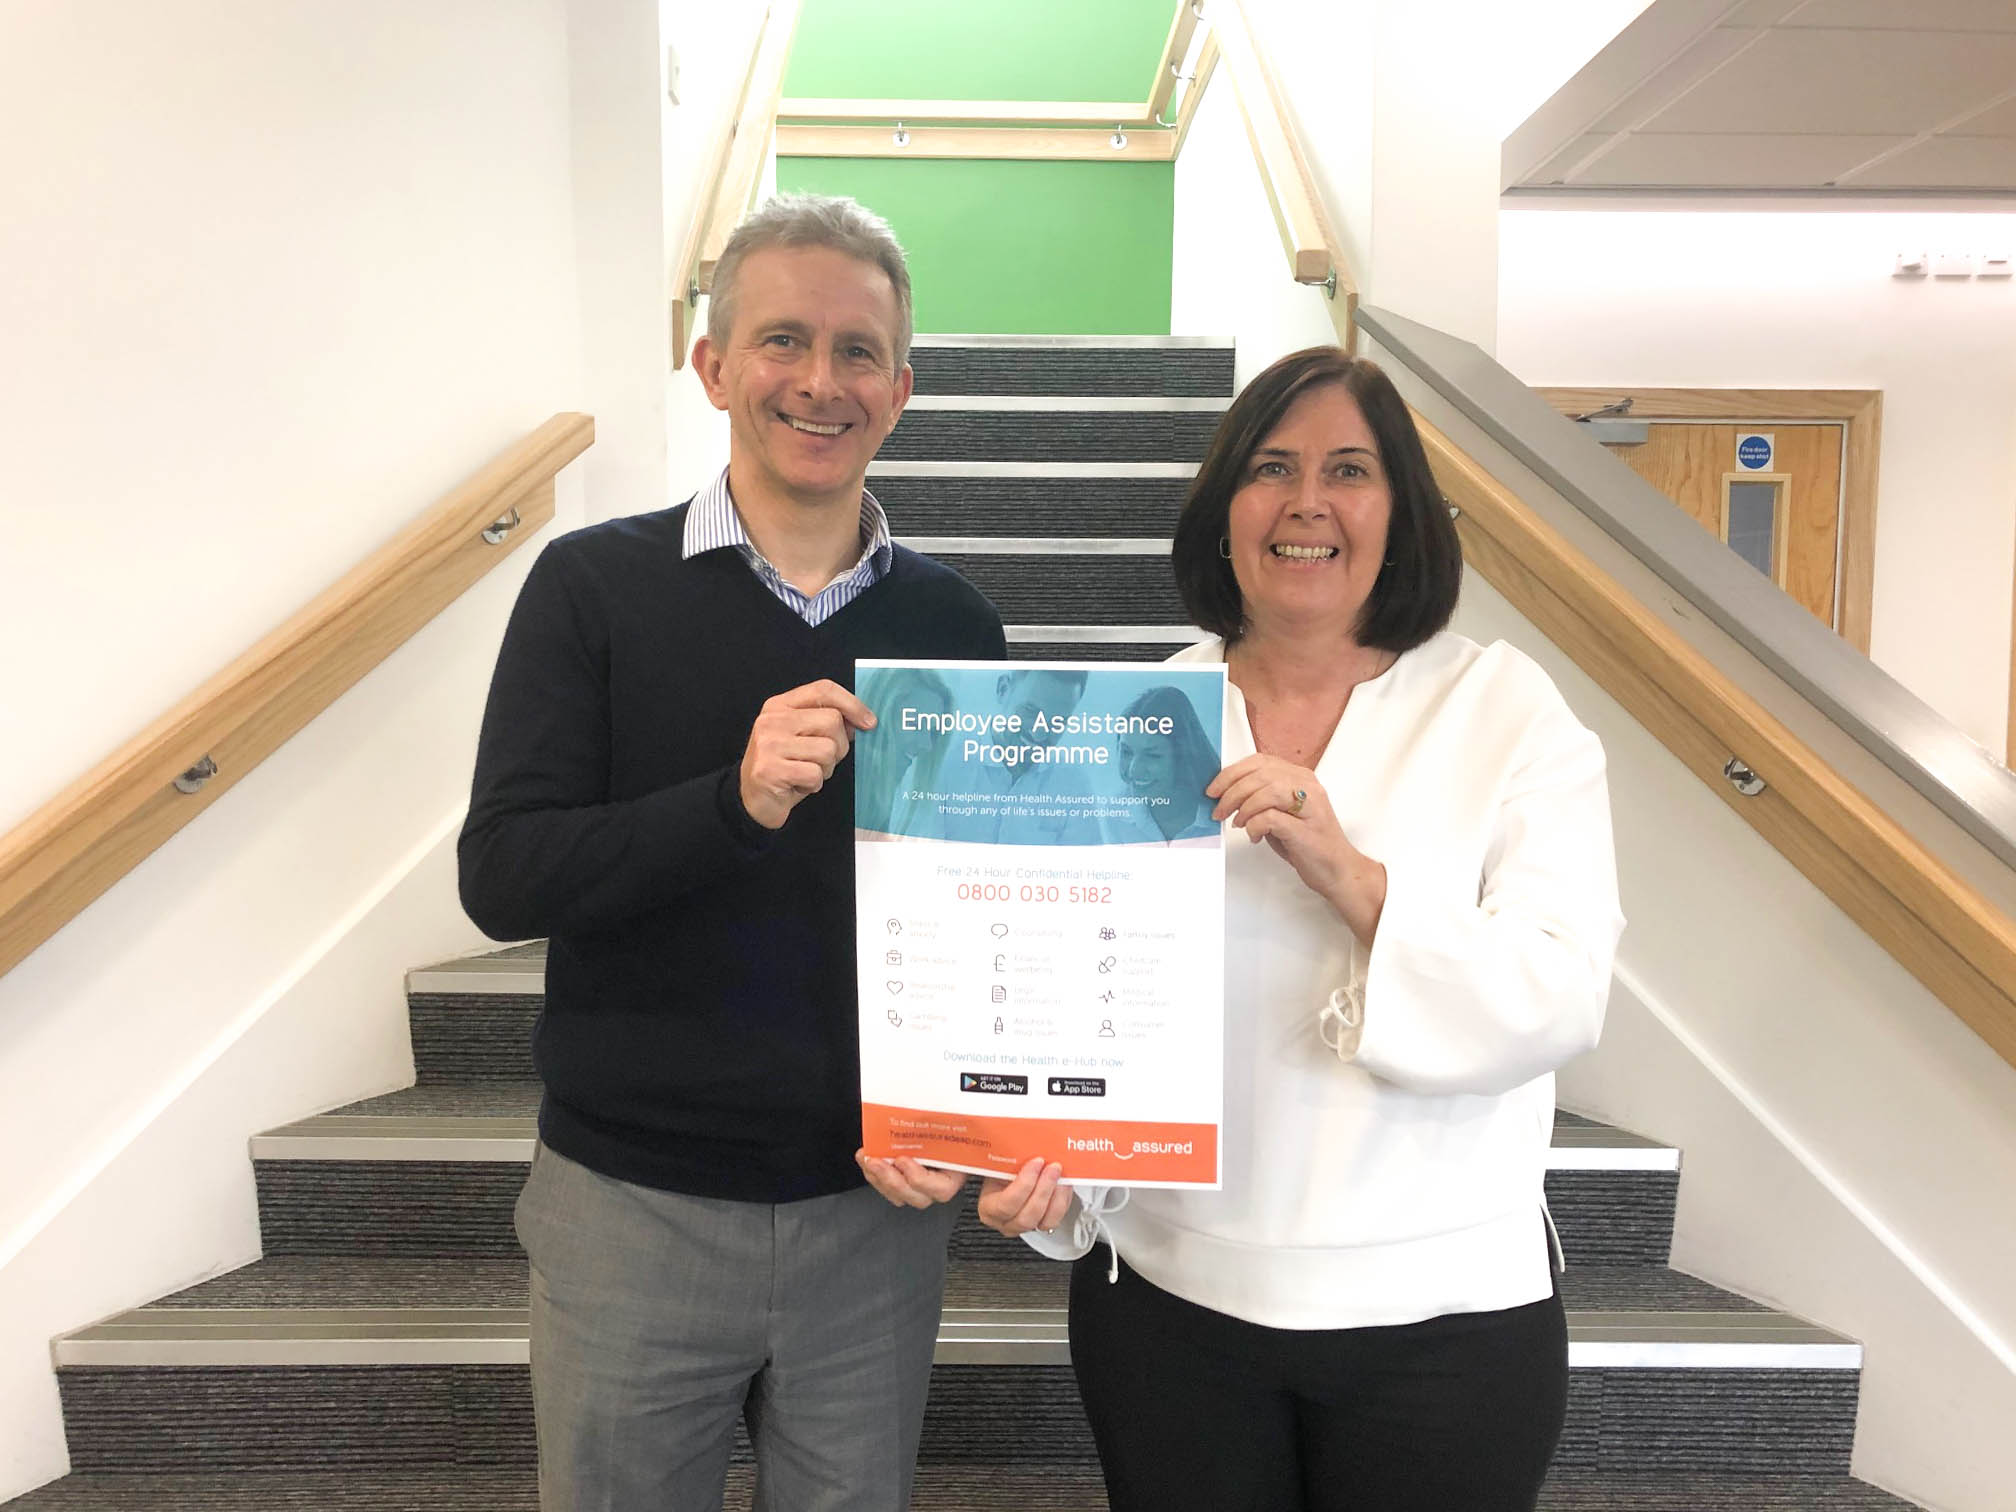 J Tomlinson supports staff with employee assistance programme